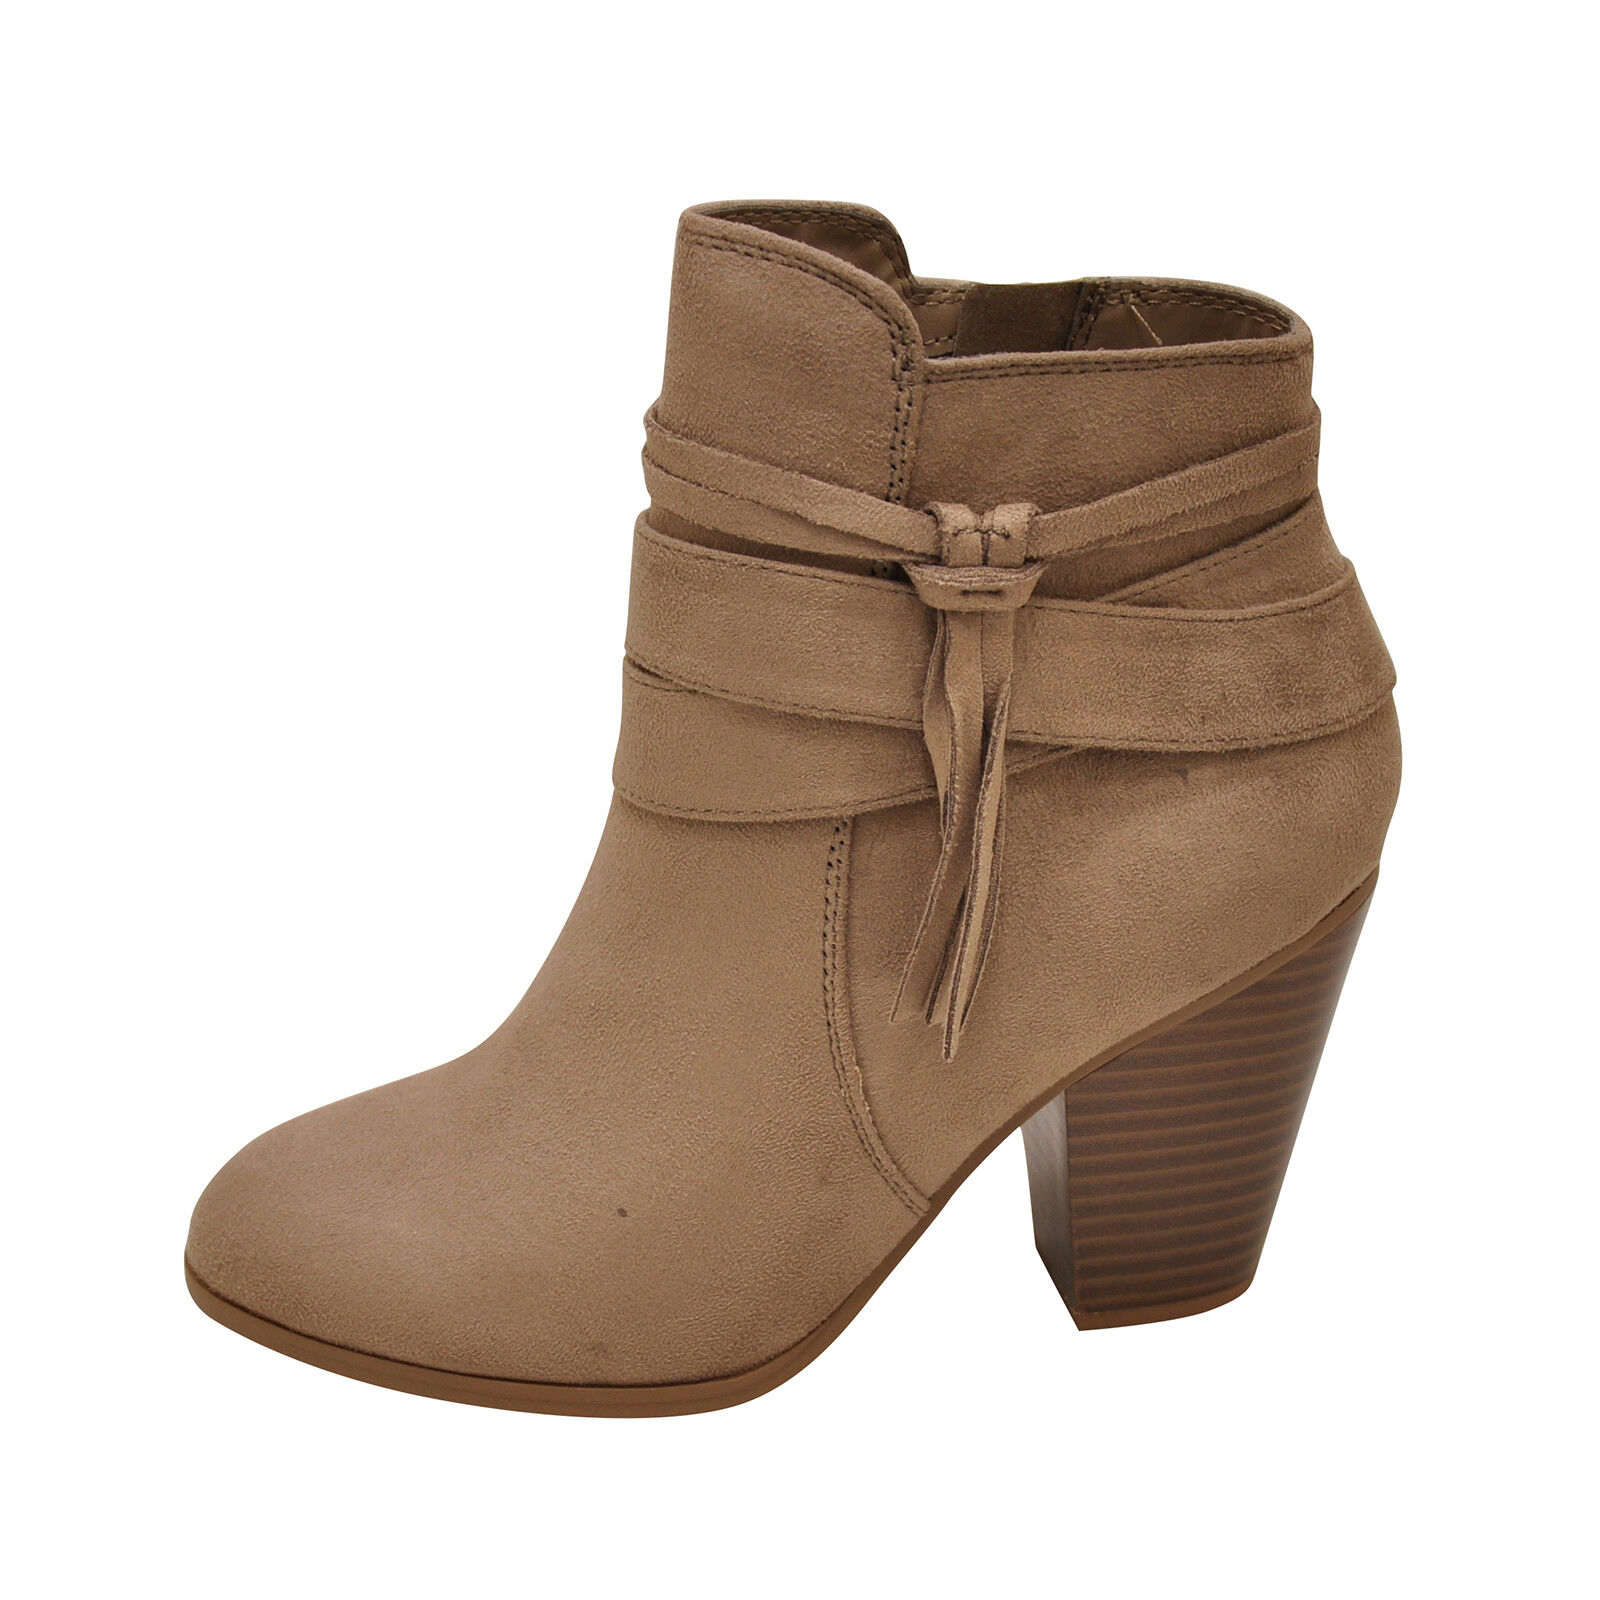 Soda ELISA-S Warm Taupe Women's Strappy Tassel Ankle Booties